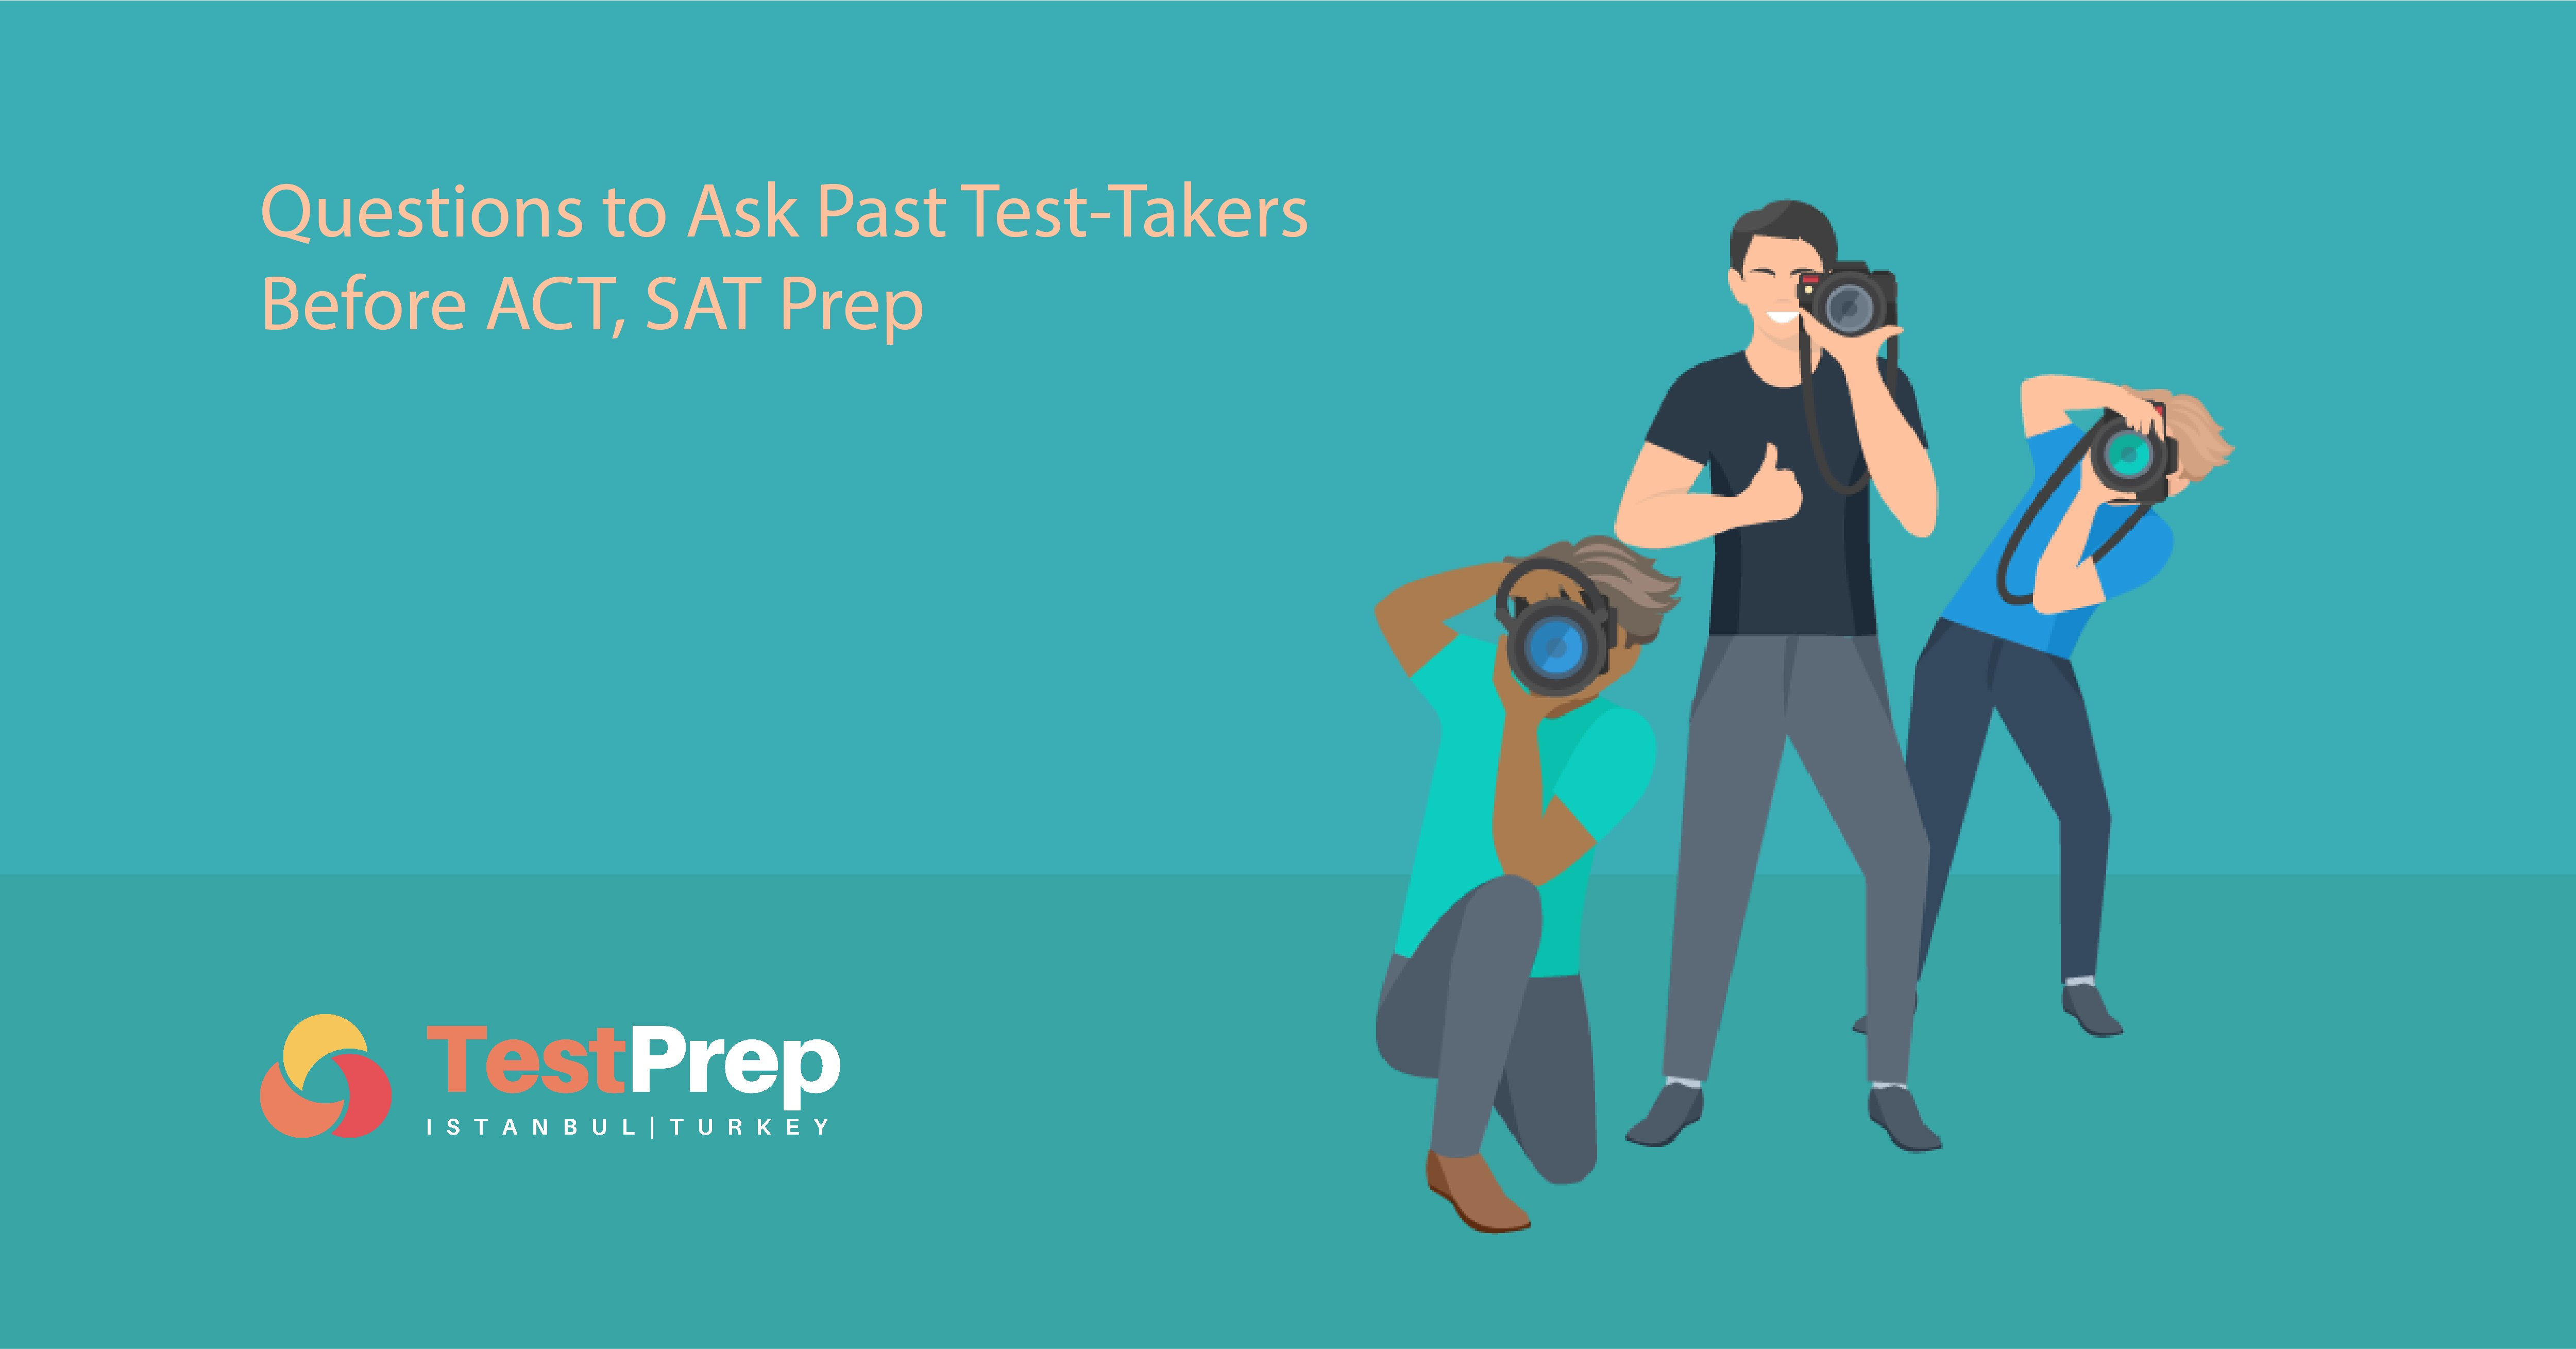 What to Ask Past Test-Takers Before ACT, SAT Prep?